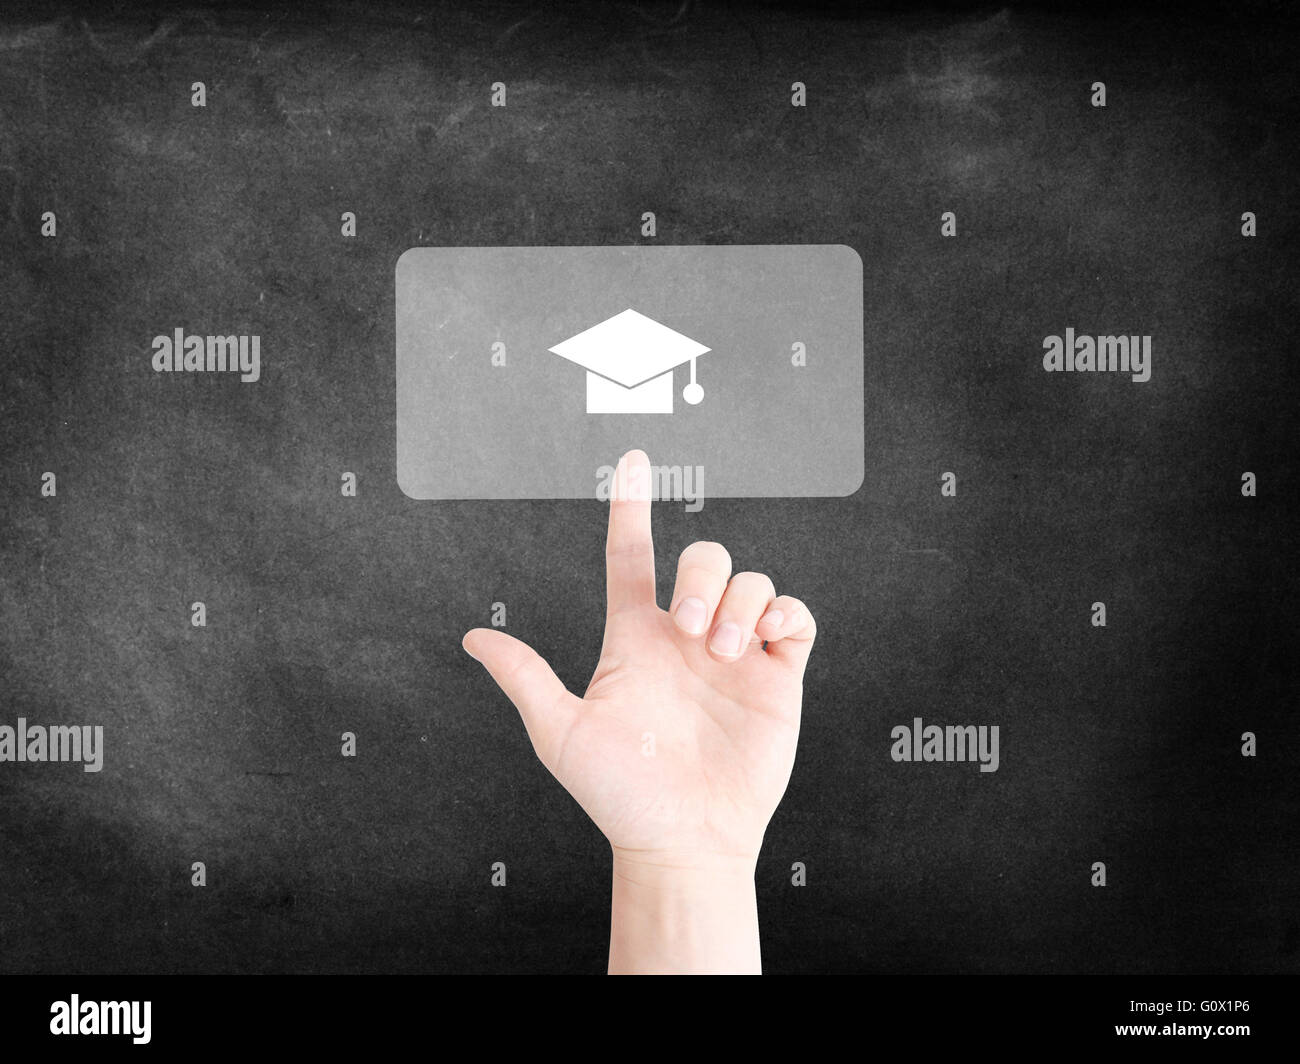 Finger tapping on an icon to symbolize education - Stock Image